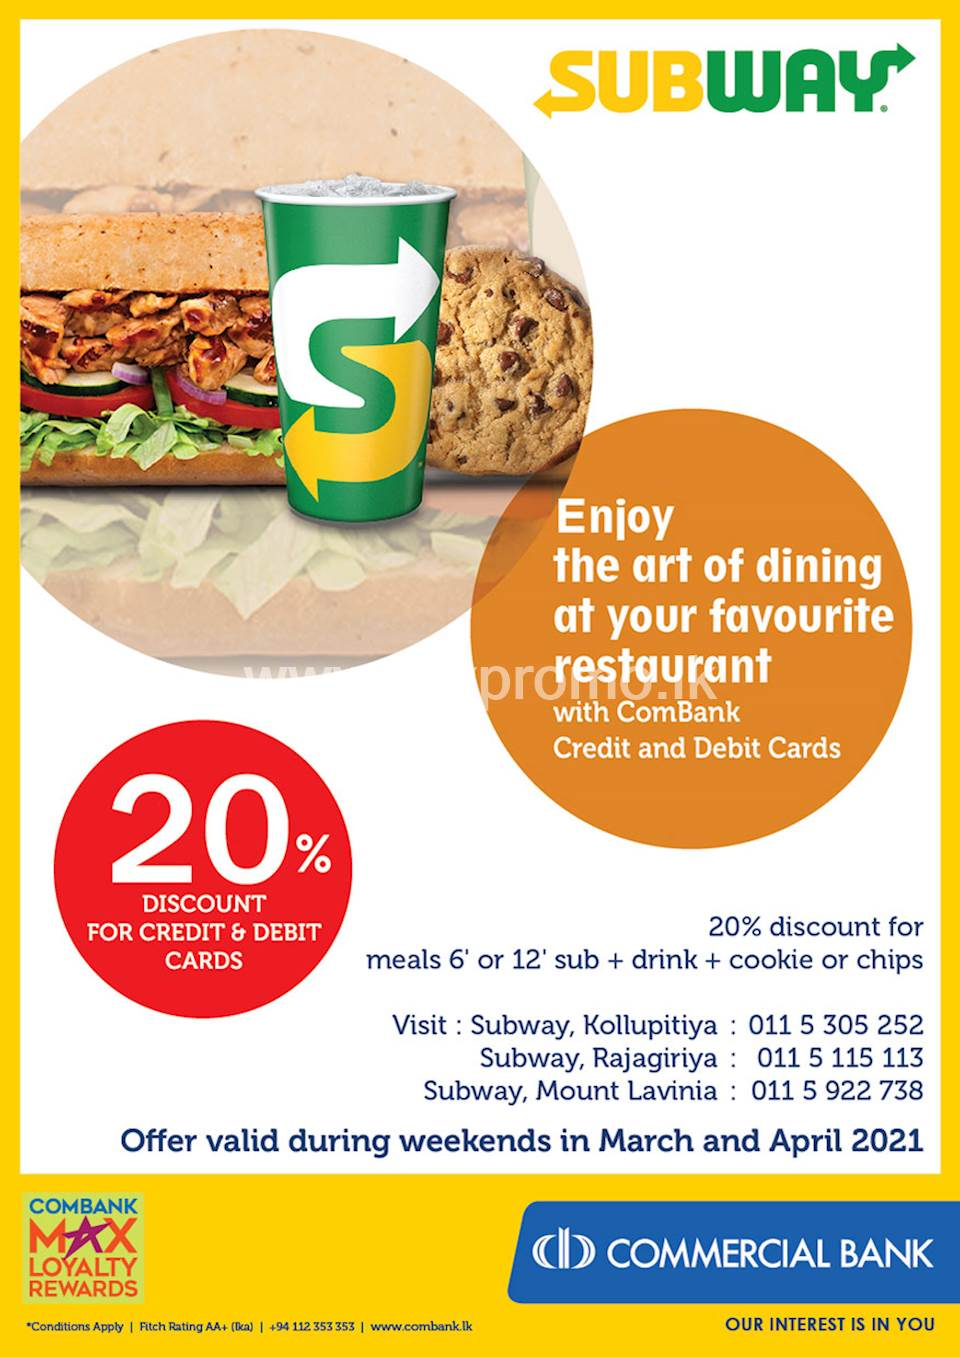 Enjoy 20% Discount with ComBank Credit and Debit Cards at Subway